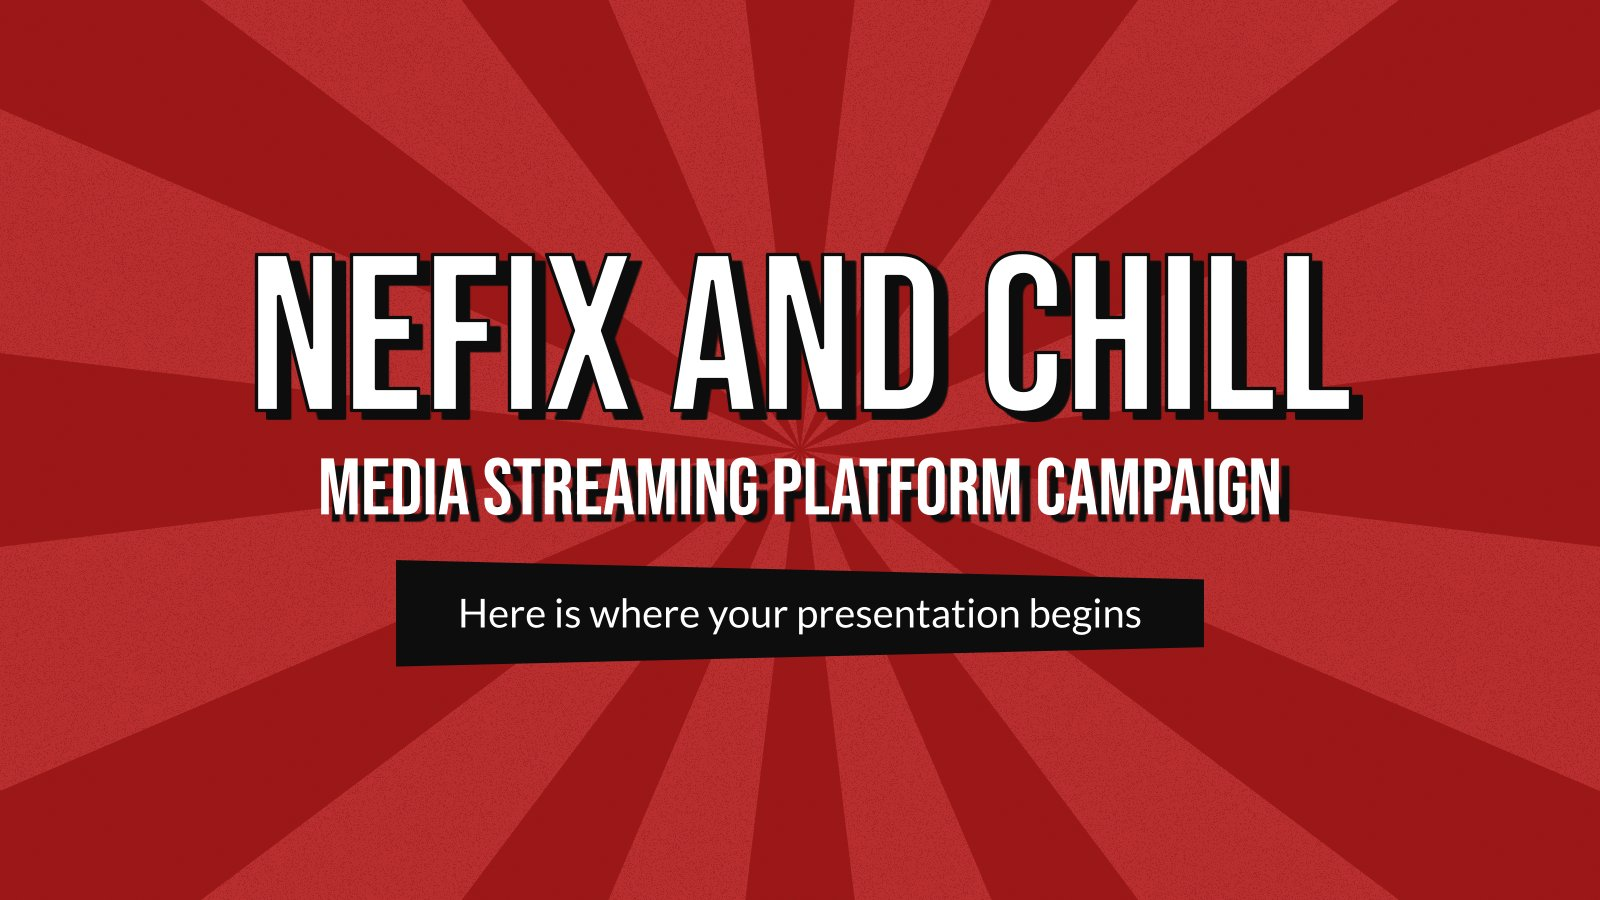 Nefix und Chill: Streaming-Plattform-Kampagne Präsentationsvorlage